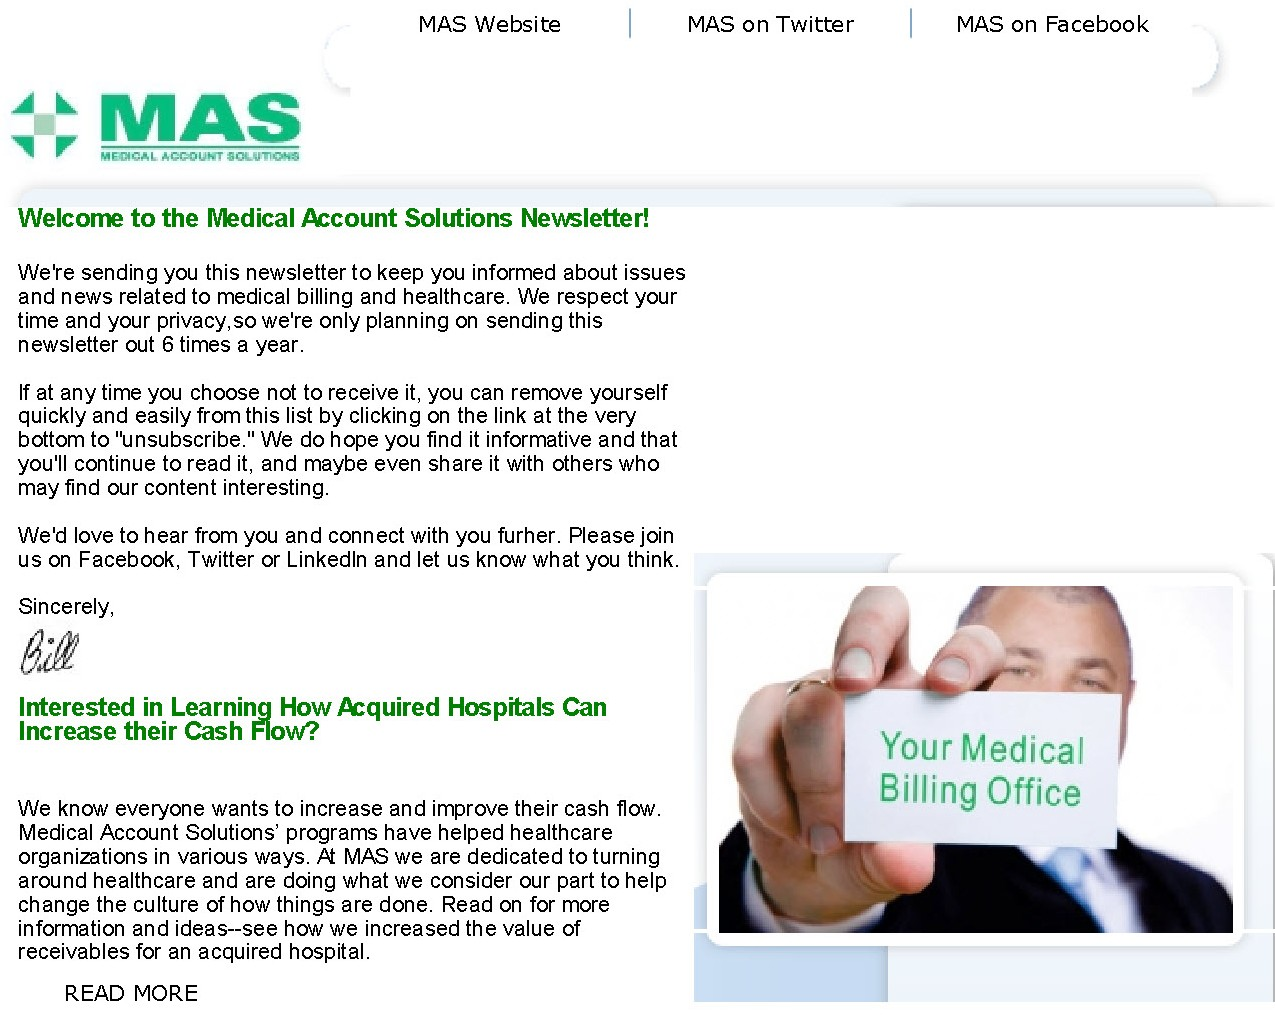 Your Medical Billing Office Newsletter Preview